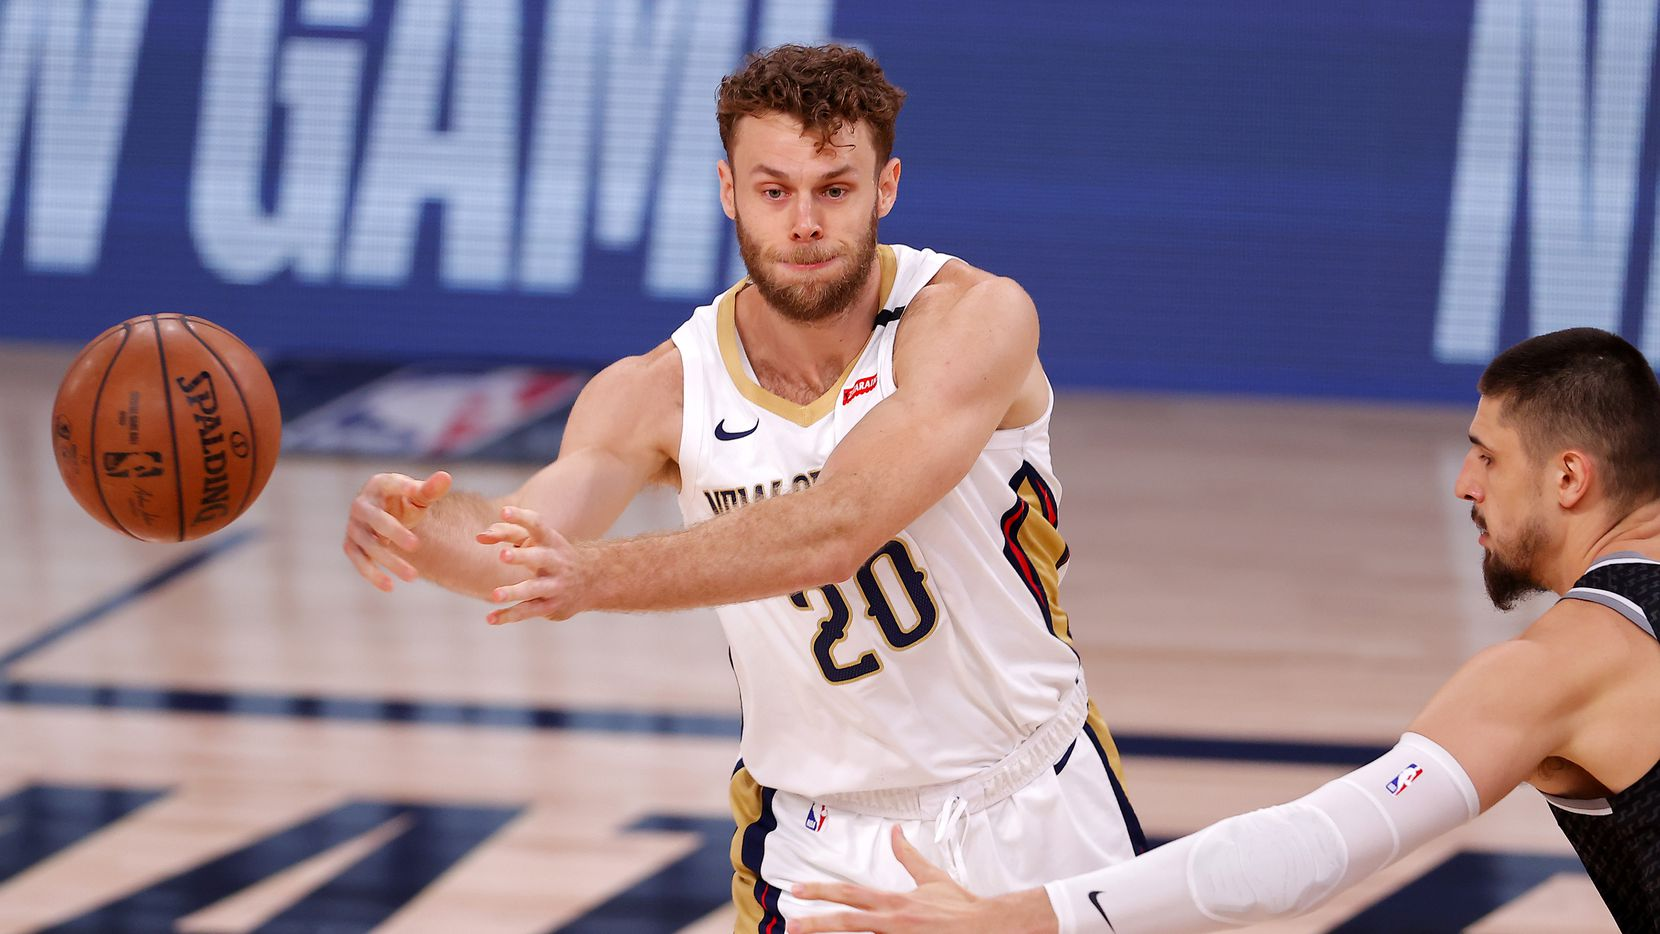 Nicolo Melli, left, of the New Orleans Pelicans passes the ball during the first quarter of an NBA basketball game Tuesday, Aug. 11, 2020, in Lake Buena Vista, Fla.